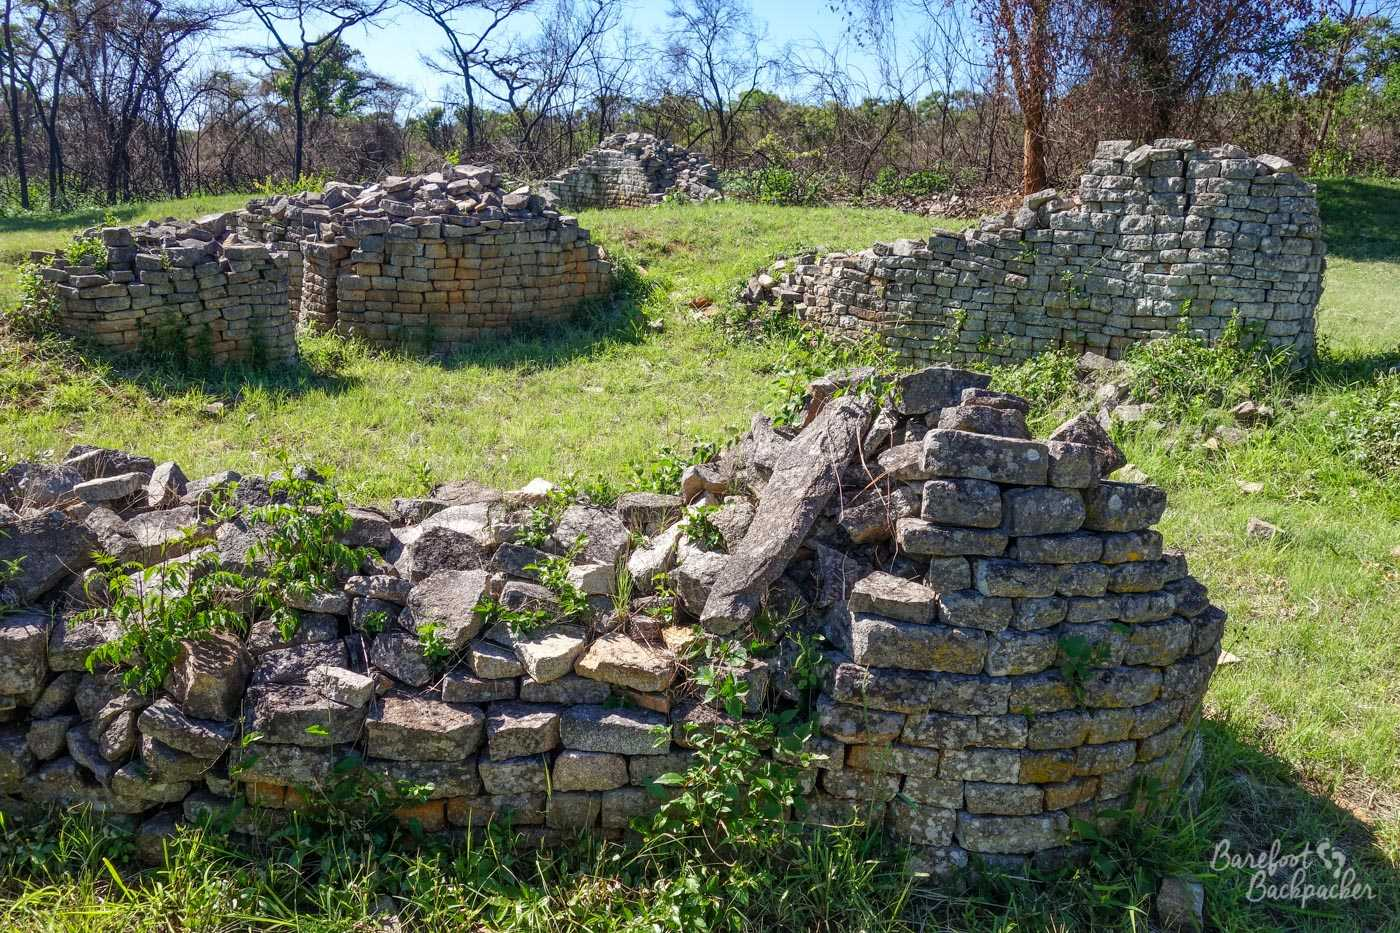 Stone ruins, probably housing, in the Valley complex at Great Zimbabwe.